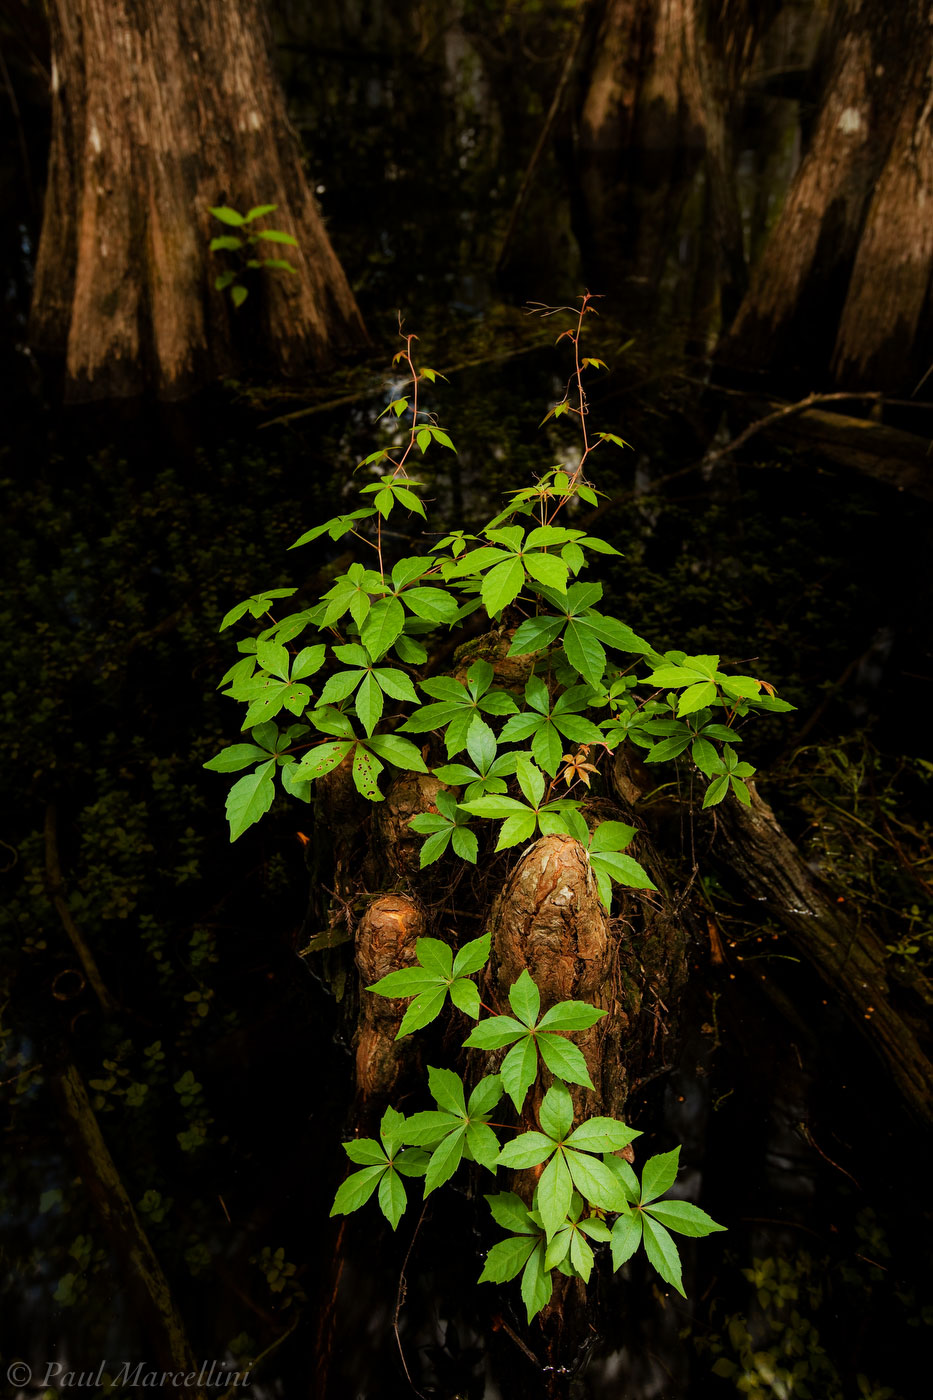 cypress, virginia creeper, Parthenocissus quinquefolia, swamp, big cypress, Florida, nature, photography, photo